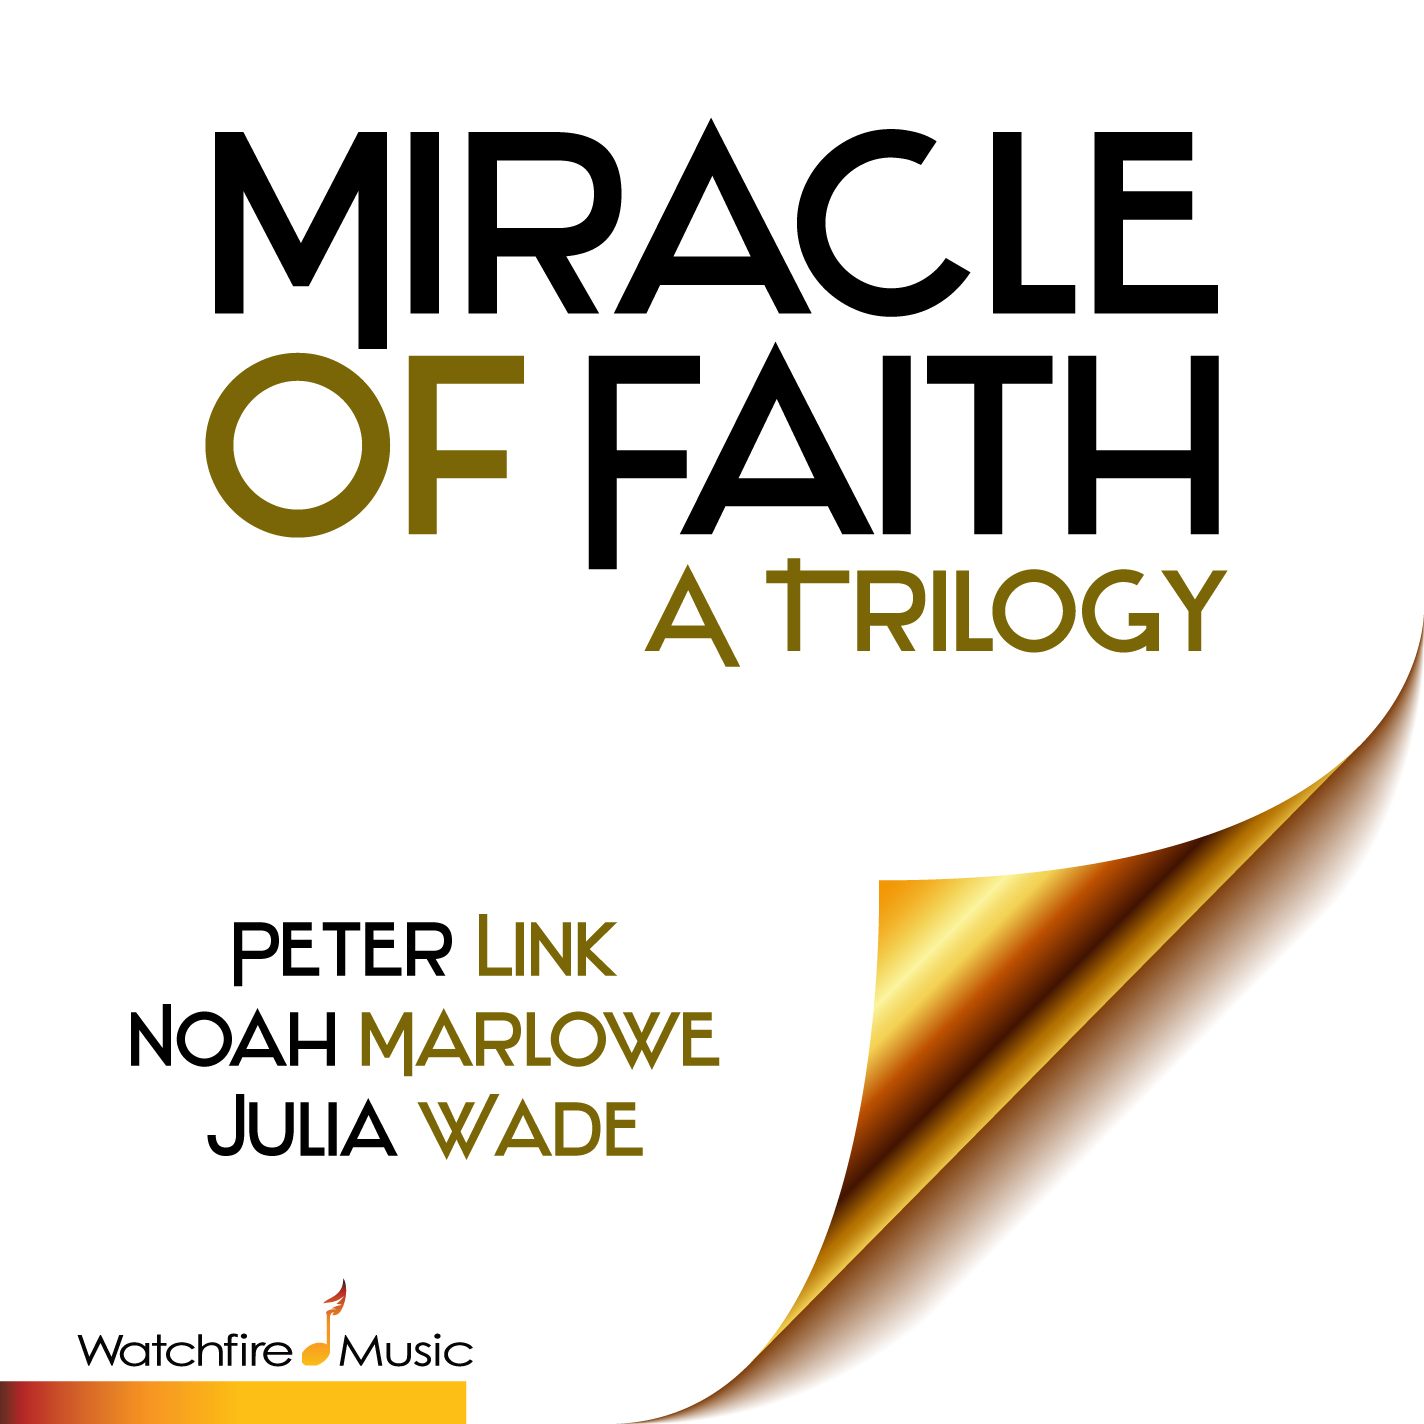 Miracle of Faith - A Trilogy